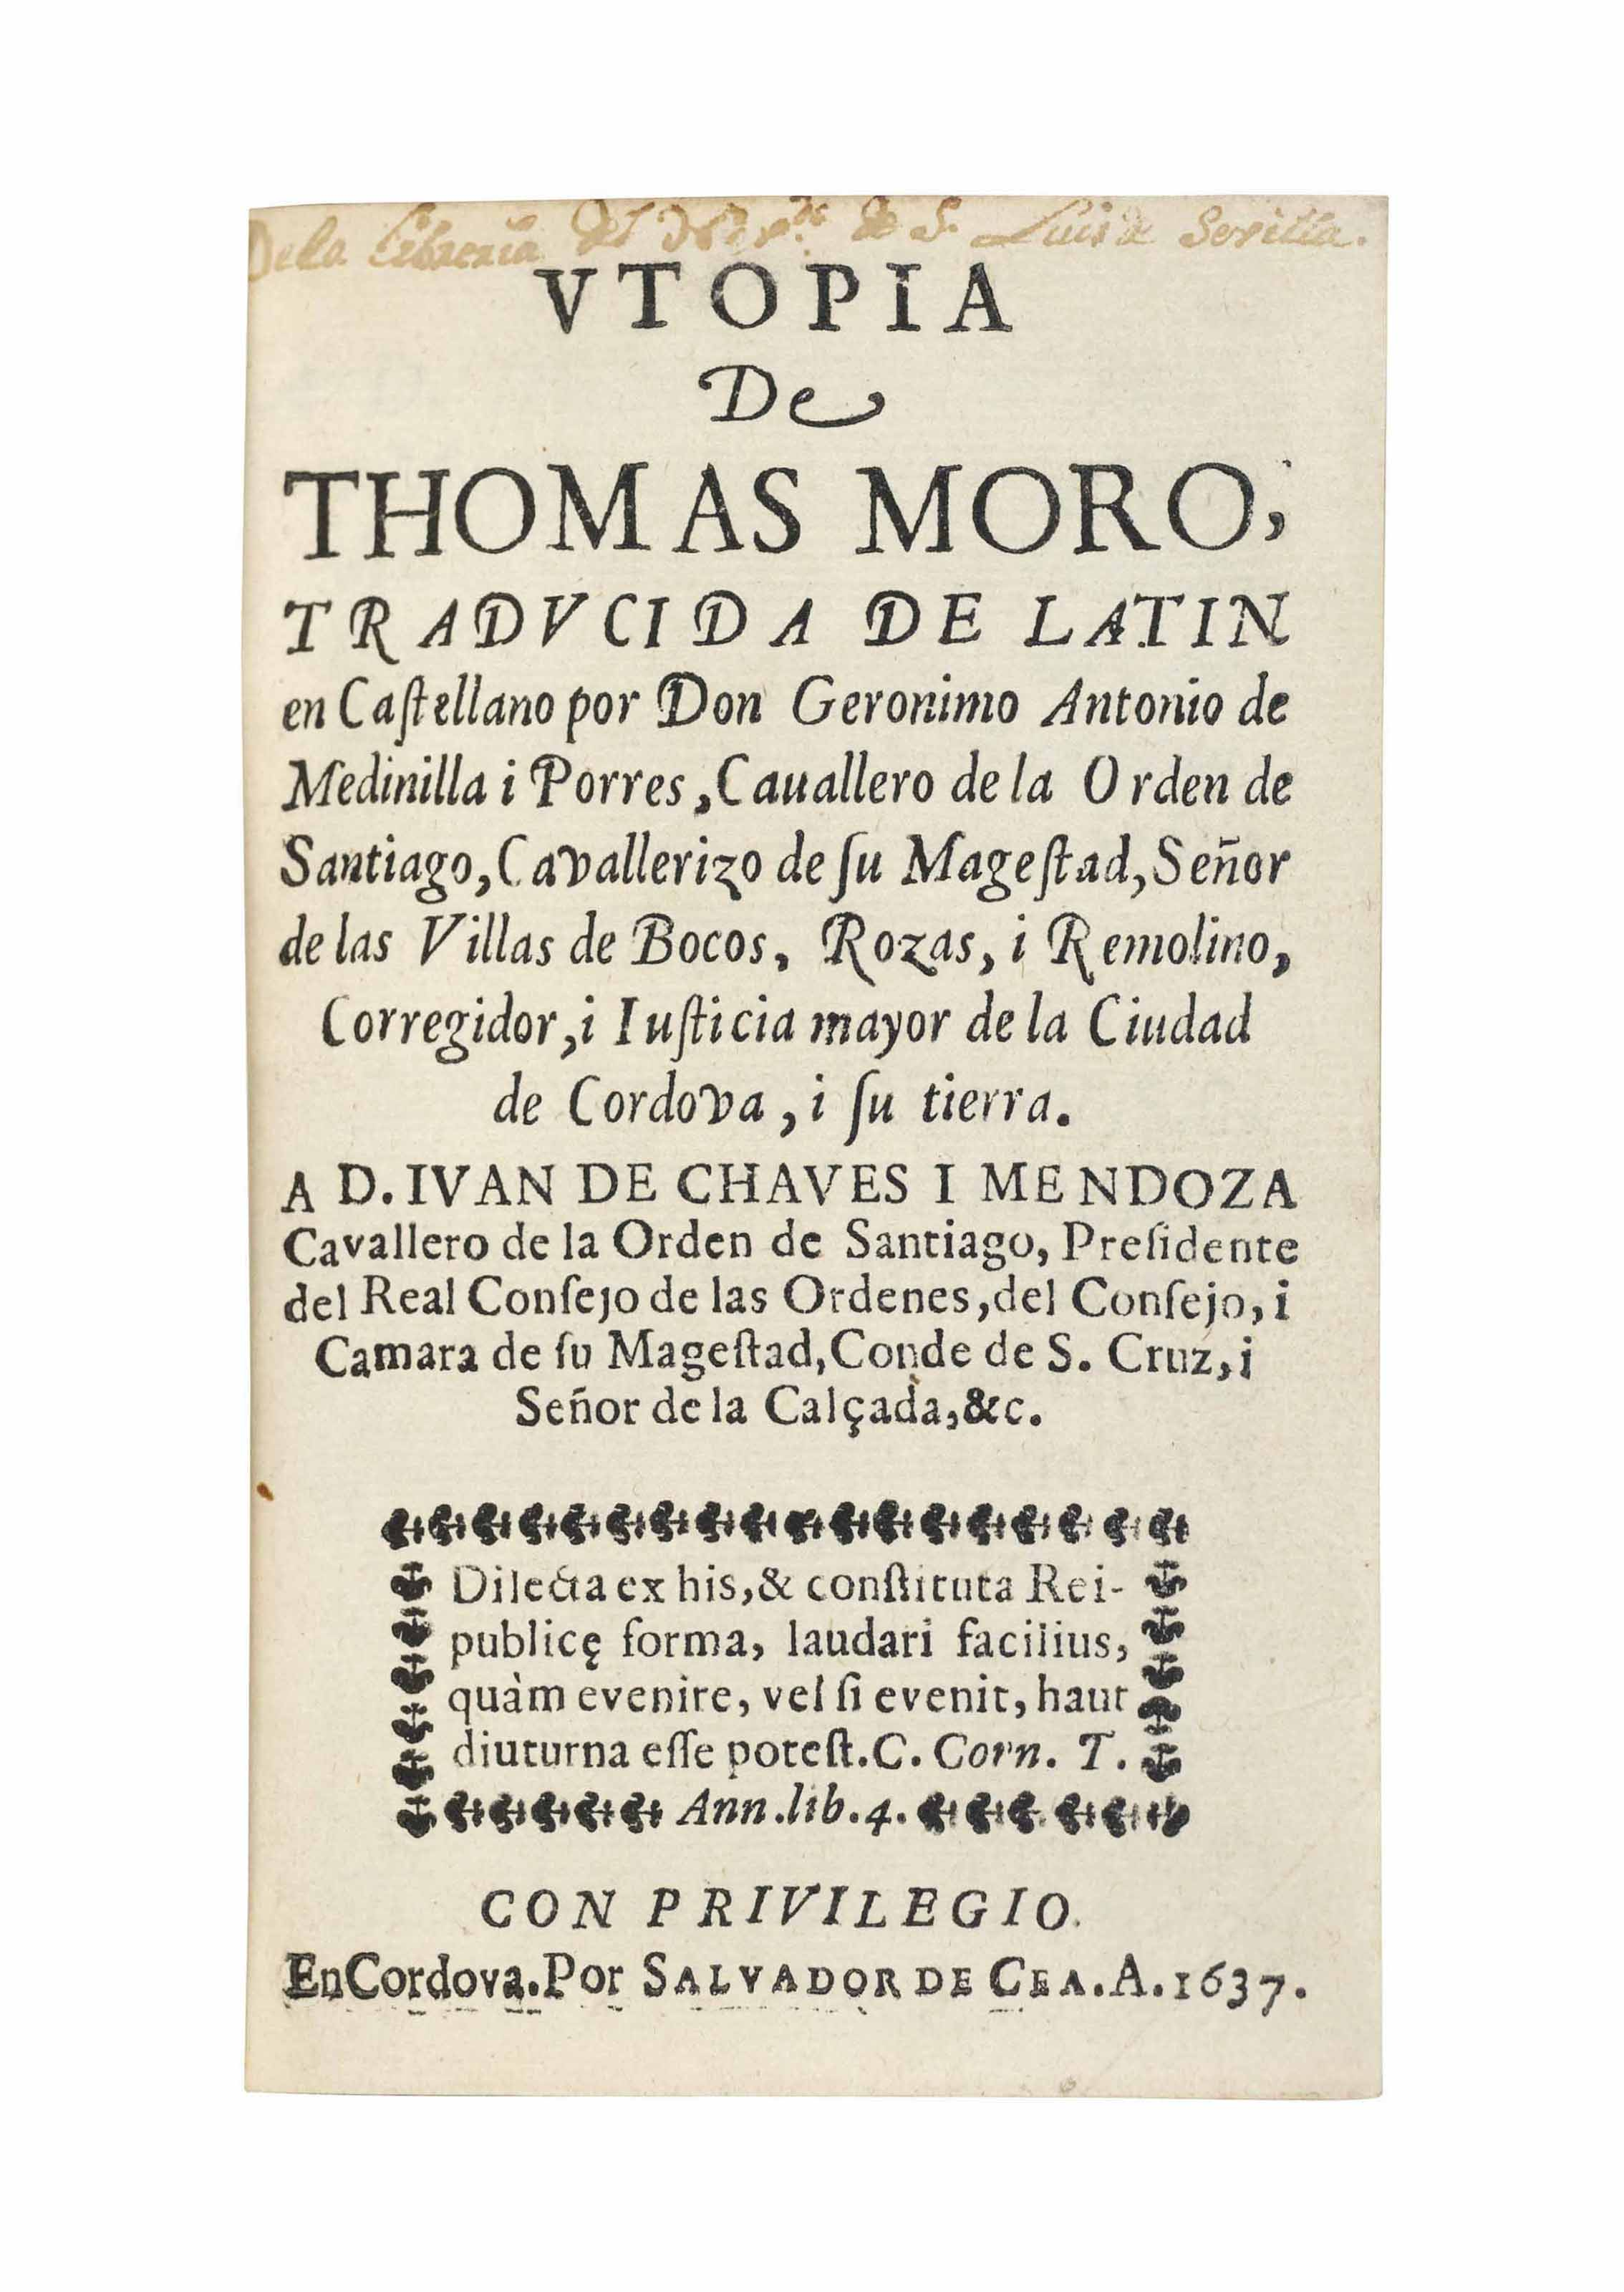 MORE, Thomas (1478-1535). Utopia ... traducido de Latin en Castellano por don Geronimo Antonio de Medinilla i Porres. Cordoba: Salvador de Cea Tesa, 1637. 8° (138 x 85mm). Woodcut initials and ornaments. Blue morocco by Brugalla, 1957, gilt supralibros, gilt-lettered spine and turn-ins, git edges. Provenance: 'De la libreria  ... Luis de Sevilla' (inscription at head of title -- bought from Antonio Chiverto, 1957, then rebound.